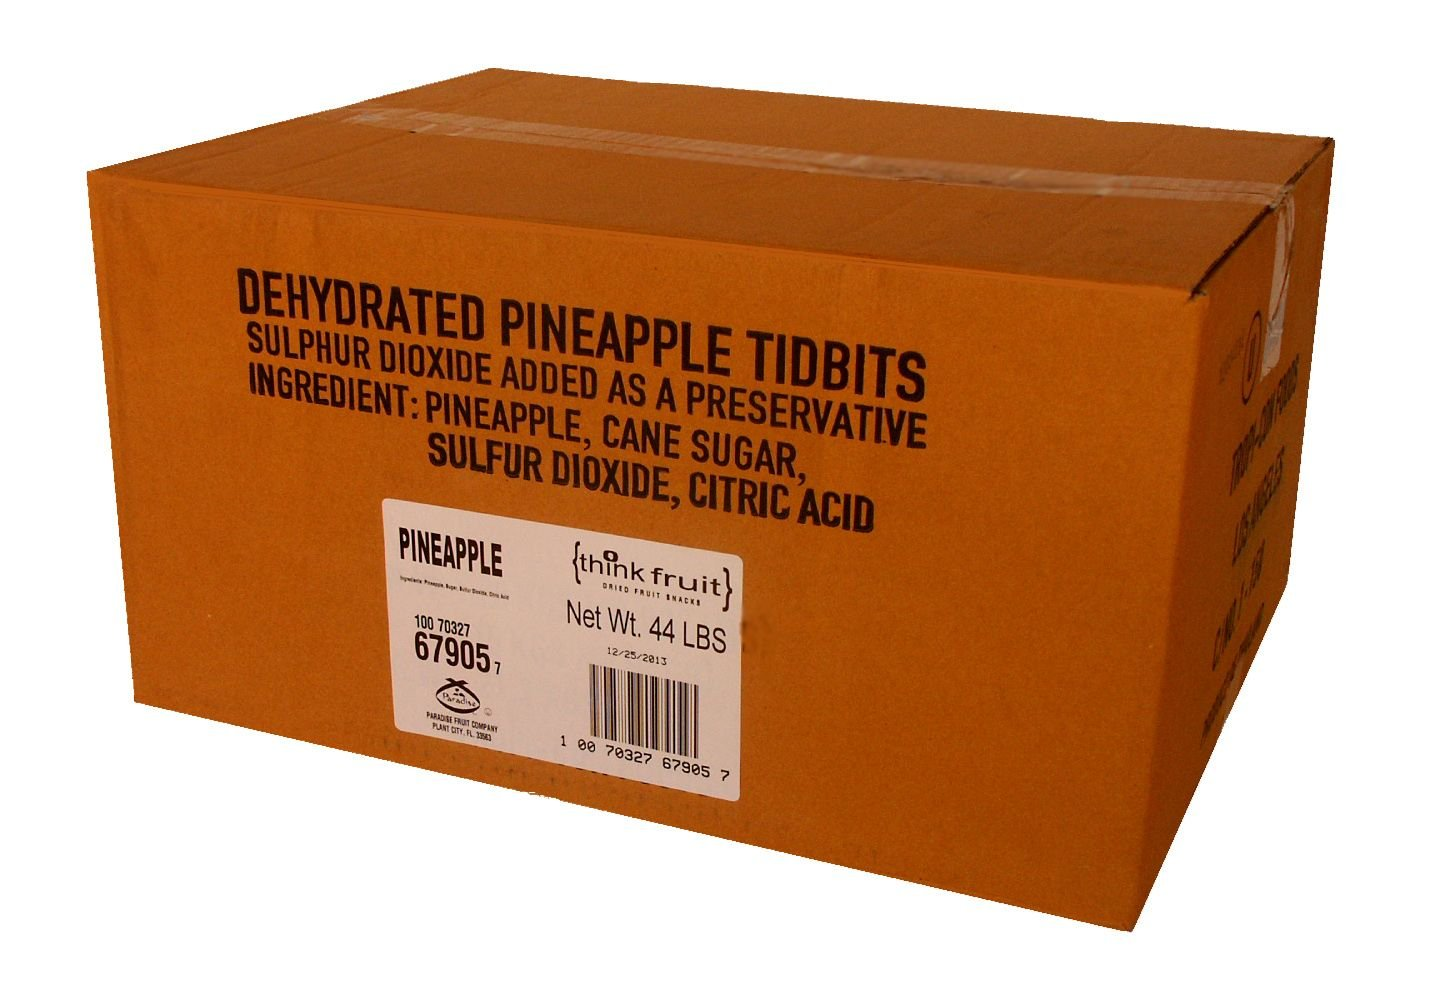 Thinkfruit Natural Dehydrated Fruit Bulk Pack, Pineapple, 44 Pound